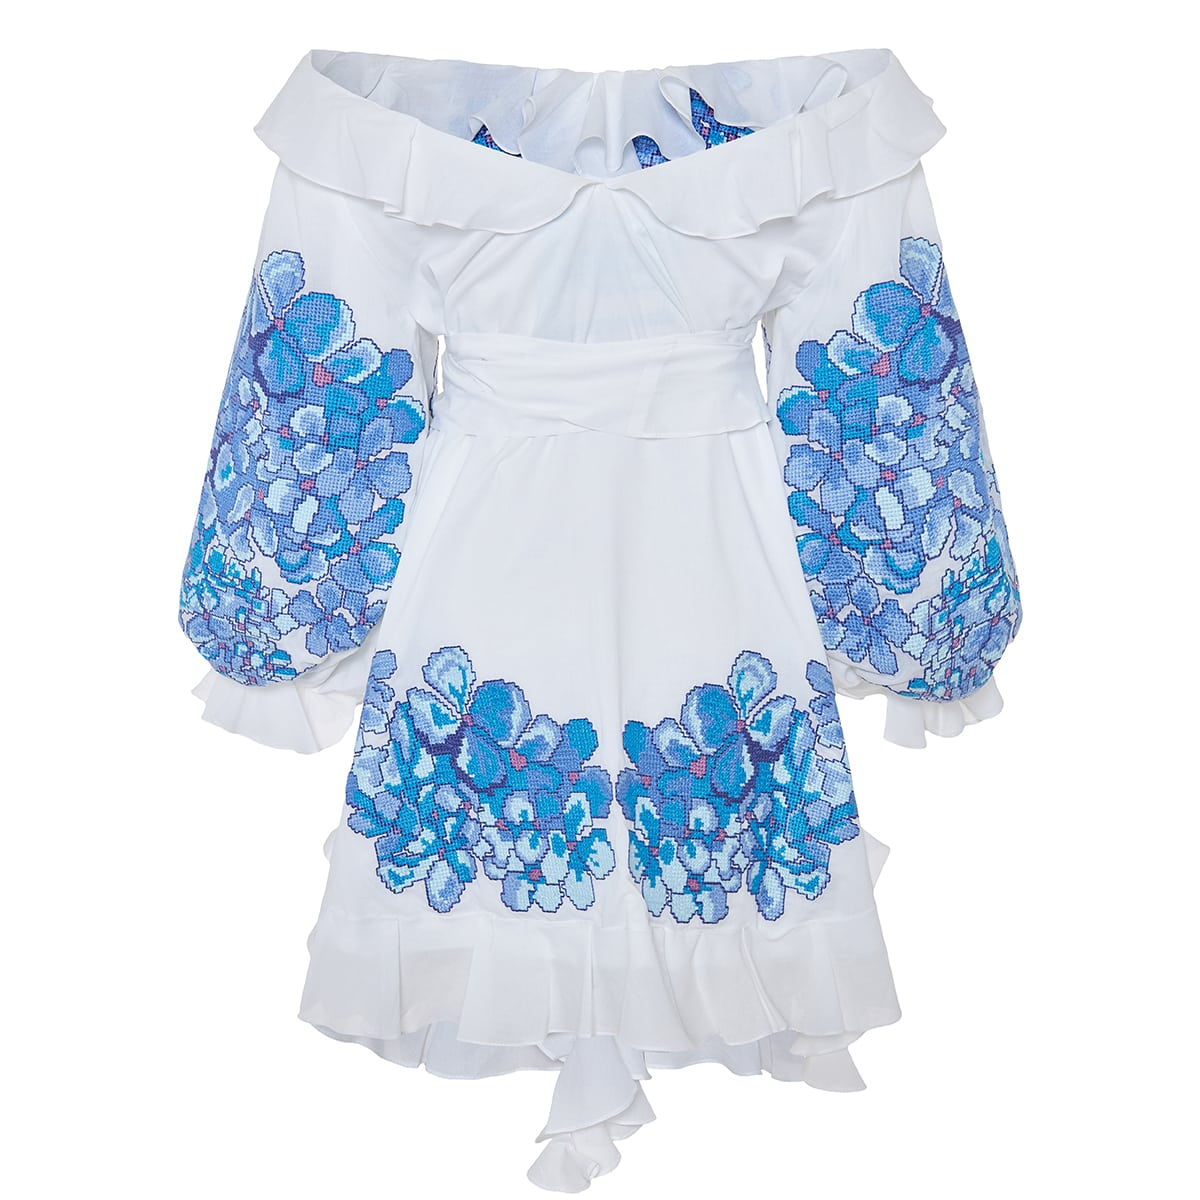 Hortensia off-the-shoulder embroidered mini dress